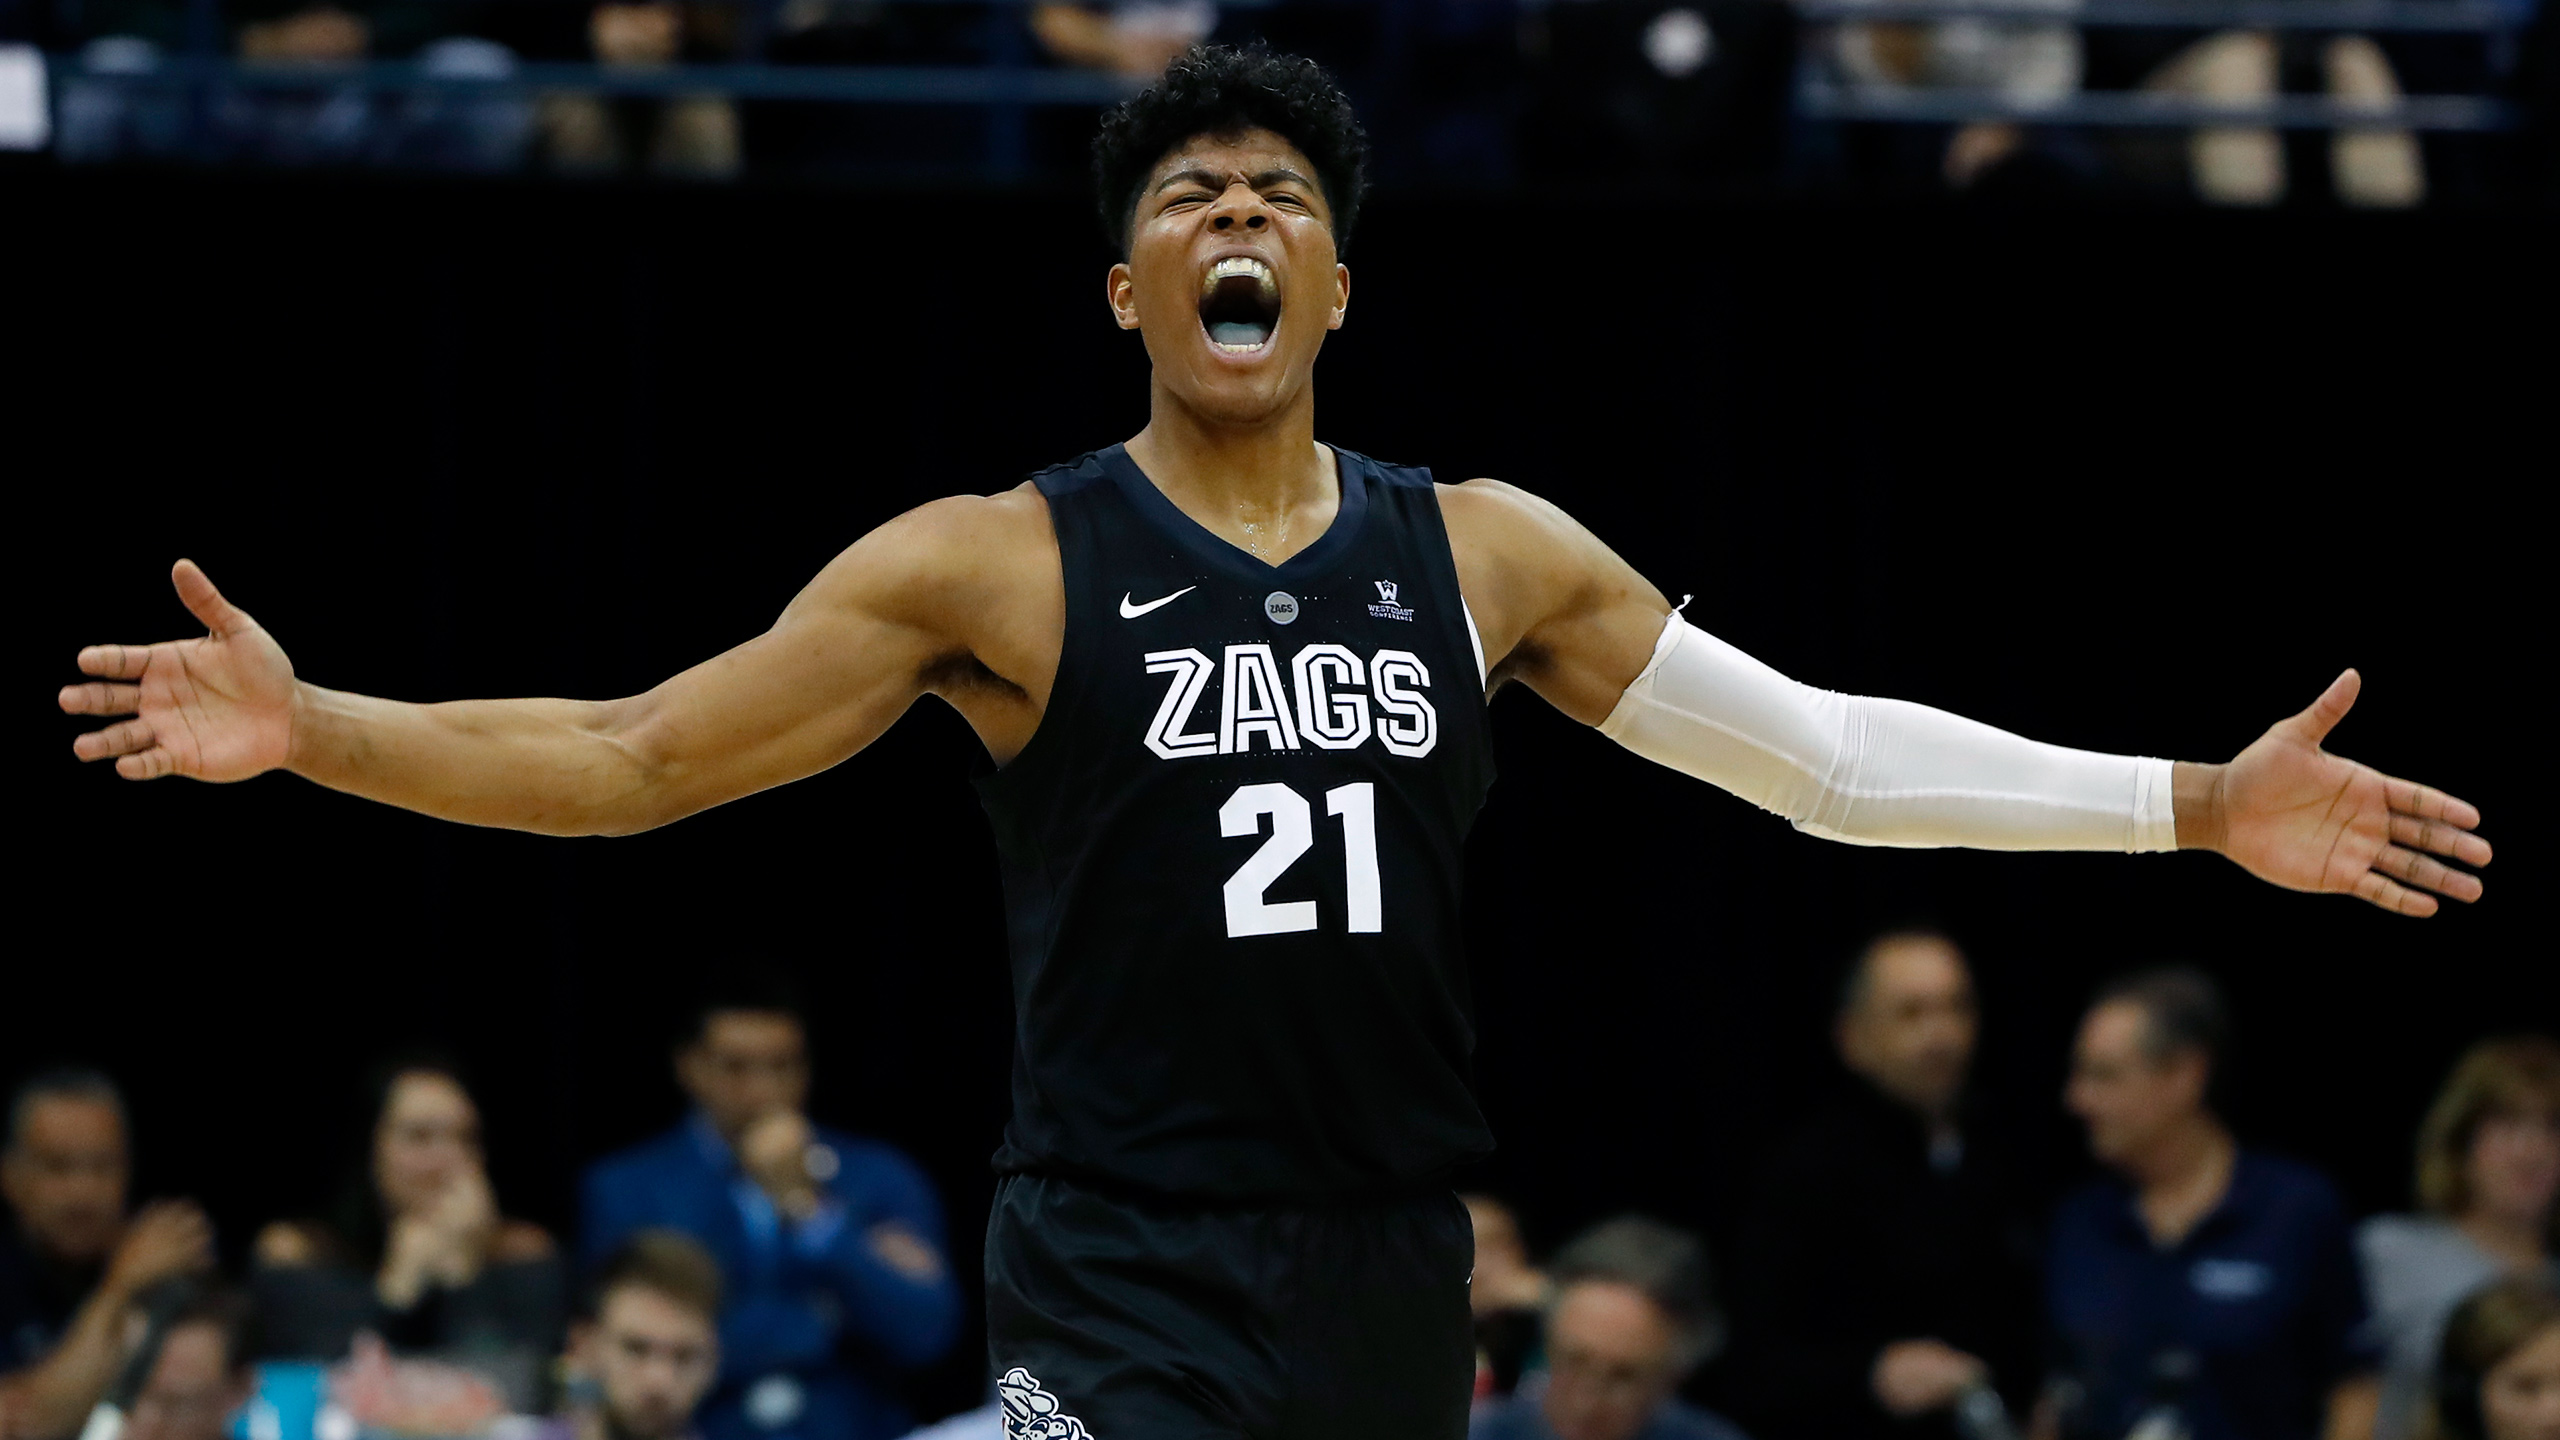 BYU vs. #2 Gonzaga (M Basketball)